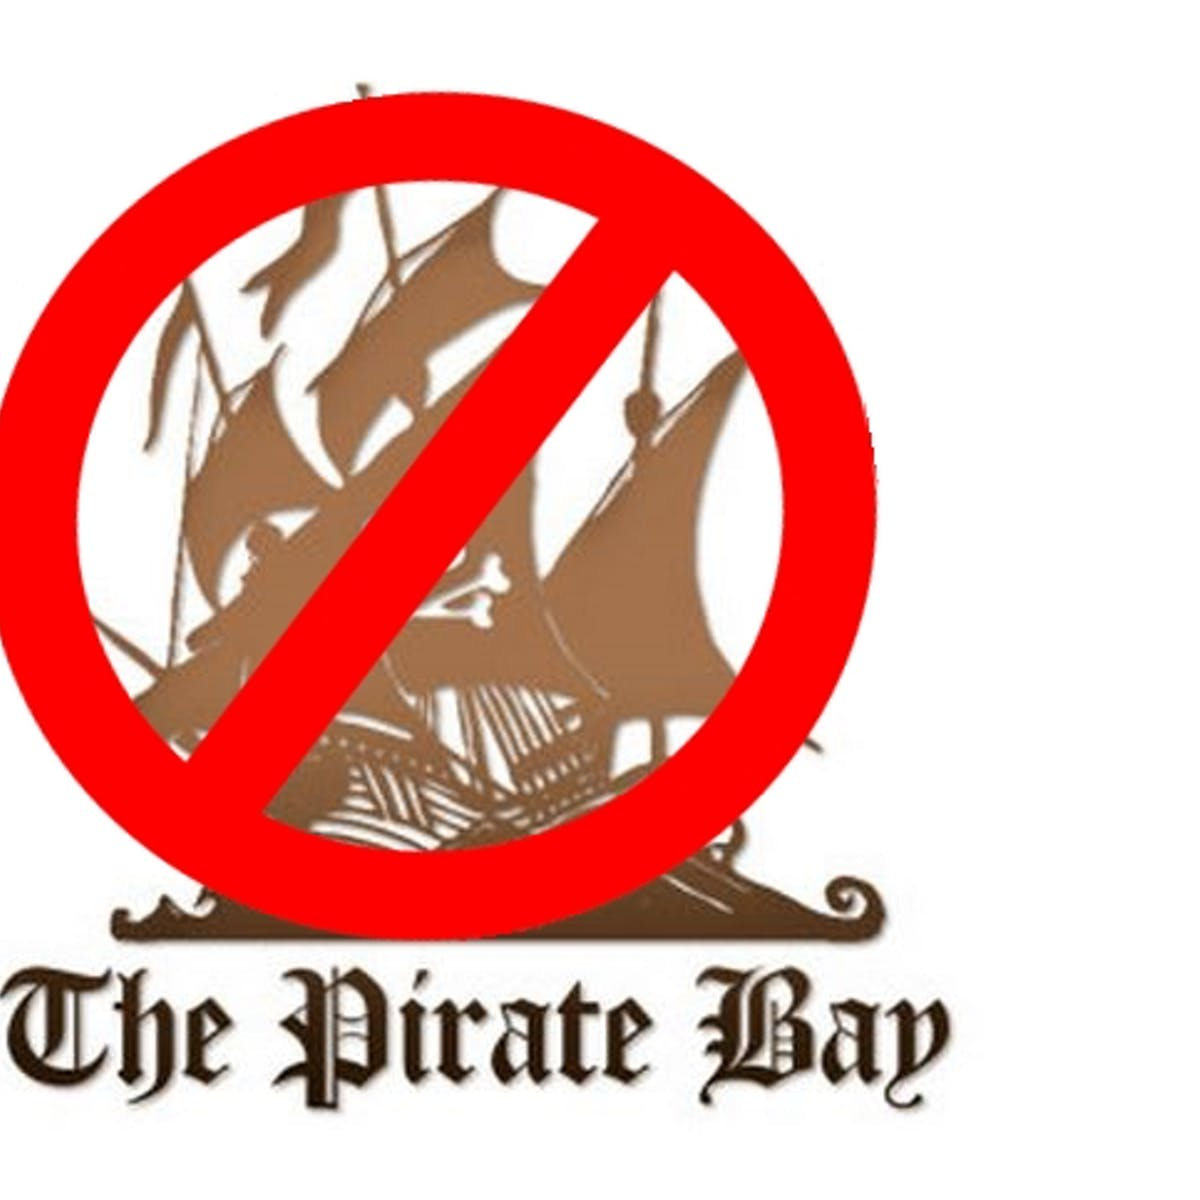 There are better ways to combat piracy than blocking websites